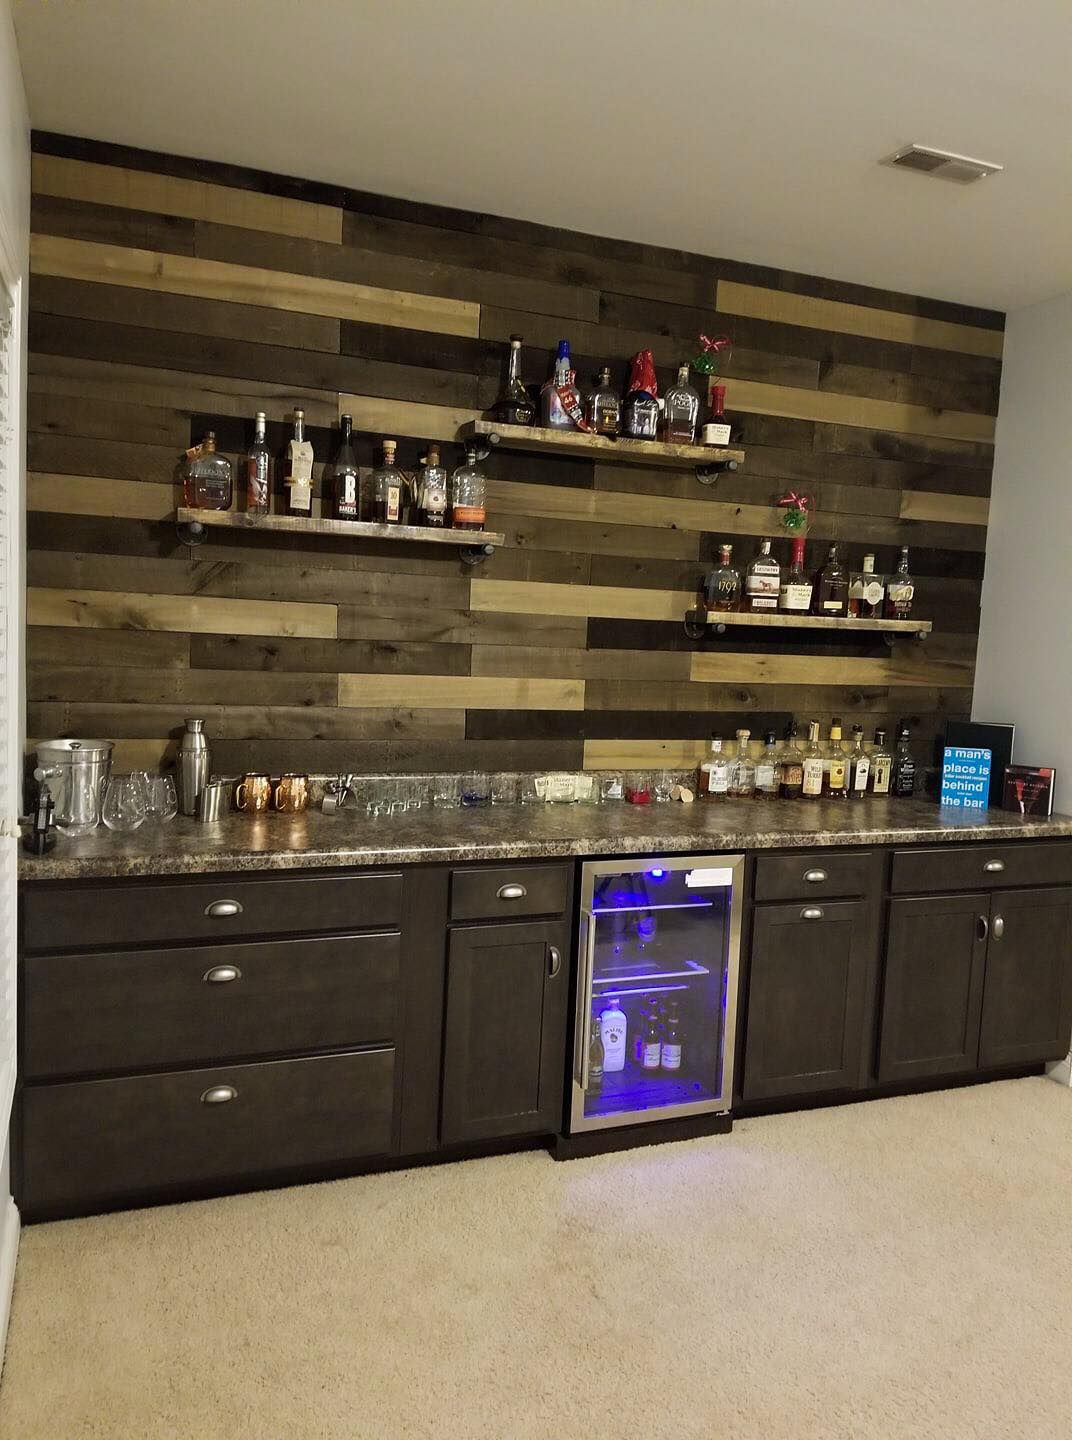 basement bar shiplap floating shelves home bars for over country wall coat rack kitchen cupboard glass oak effect shelving unit book ledge foot shelf ikea bathroom floor